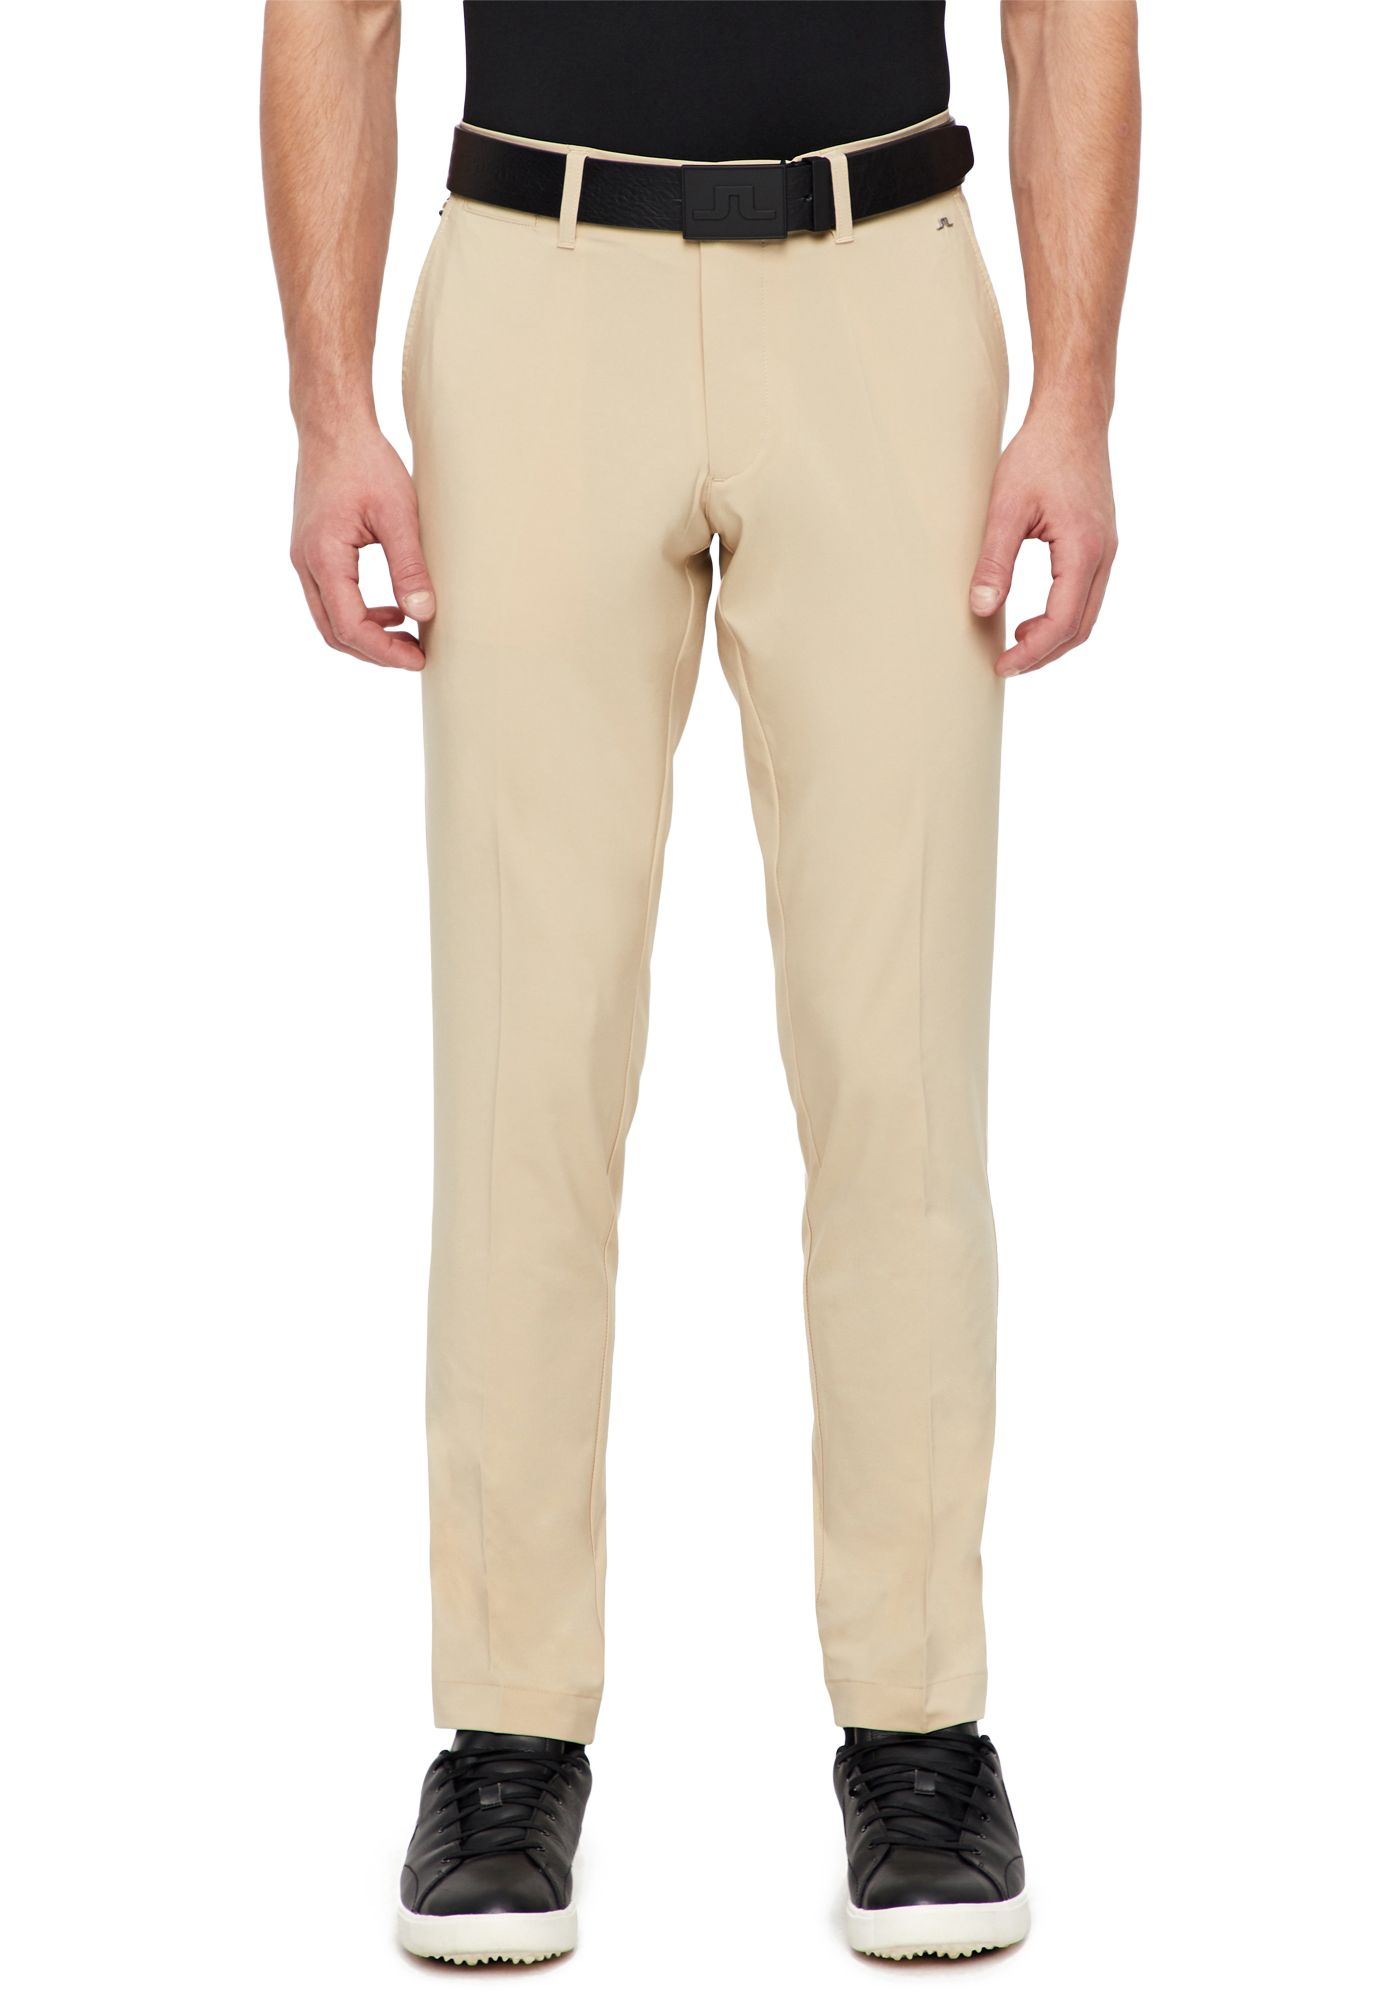 J.Lindeberg Men's Ellott Slim Fit Stretch Golf Pants